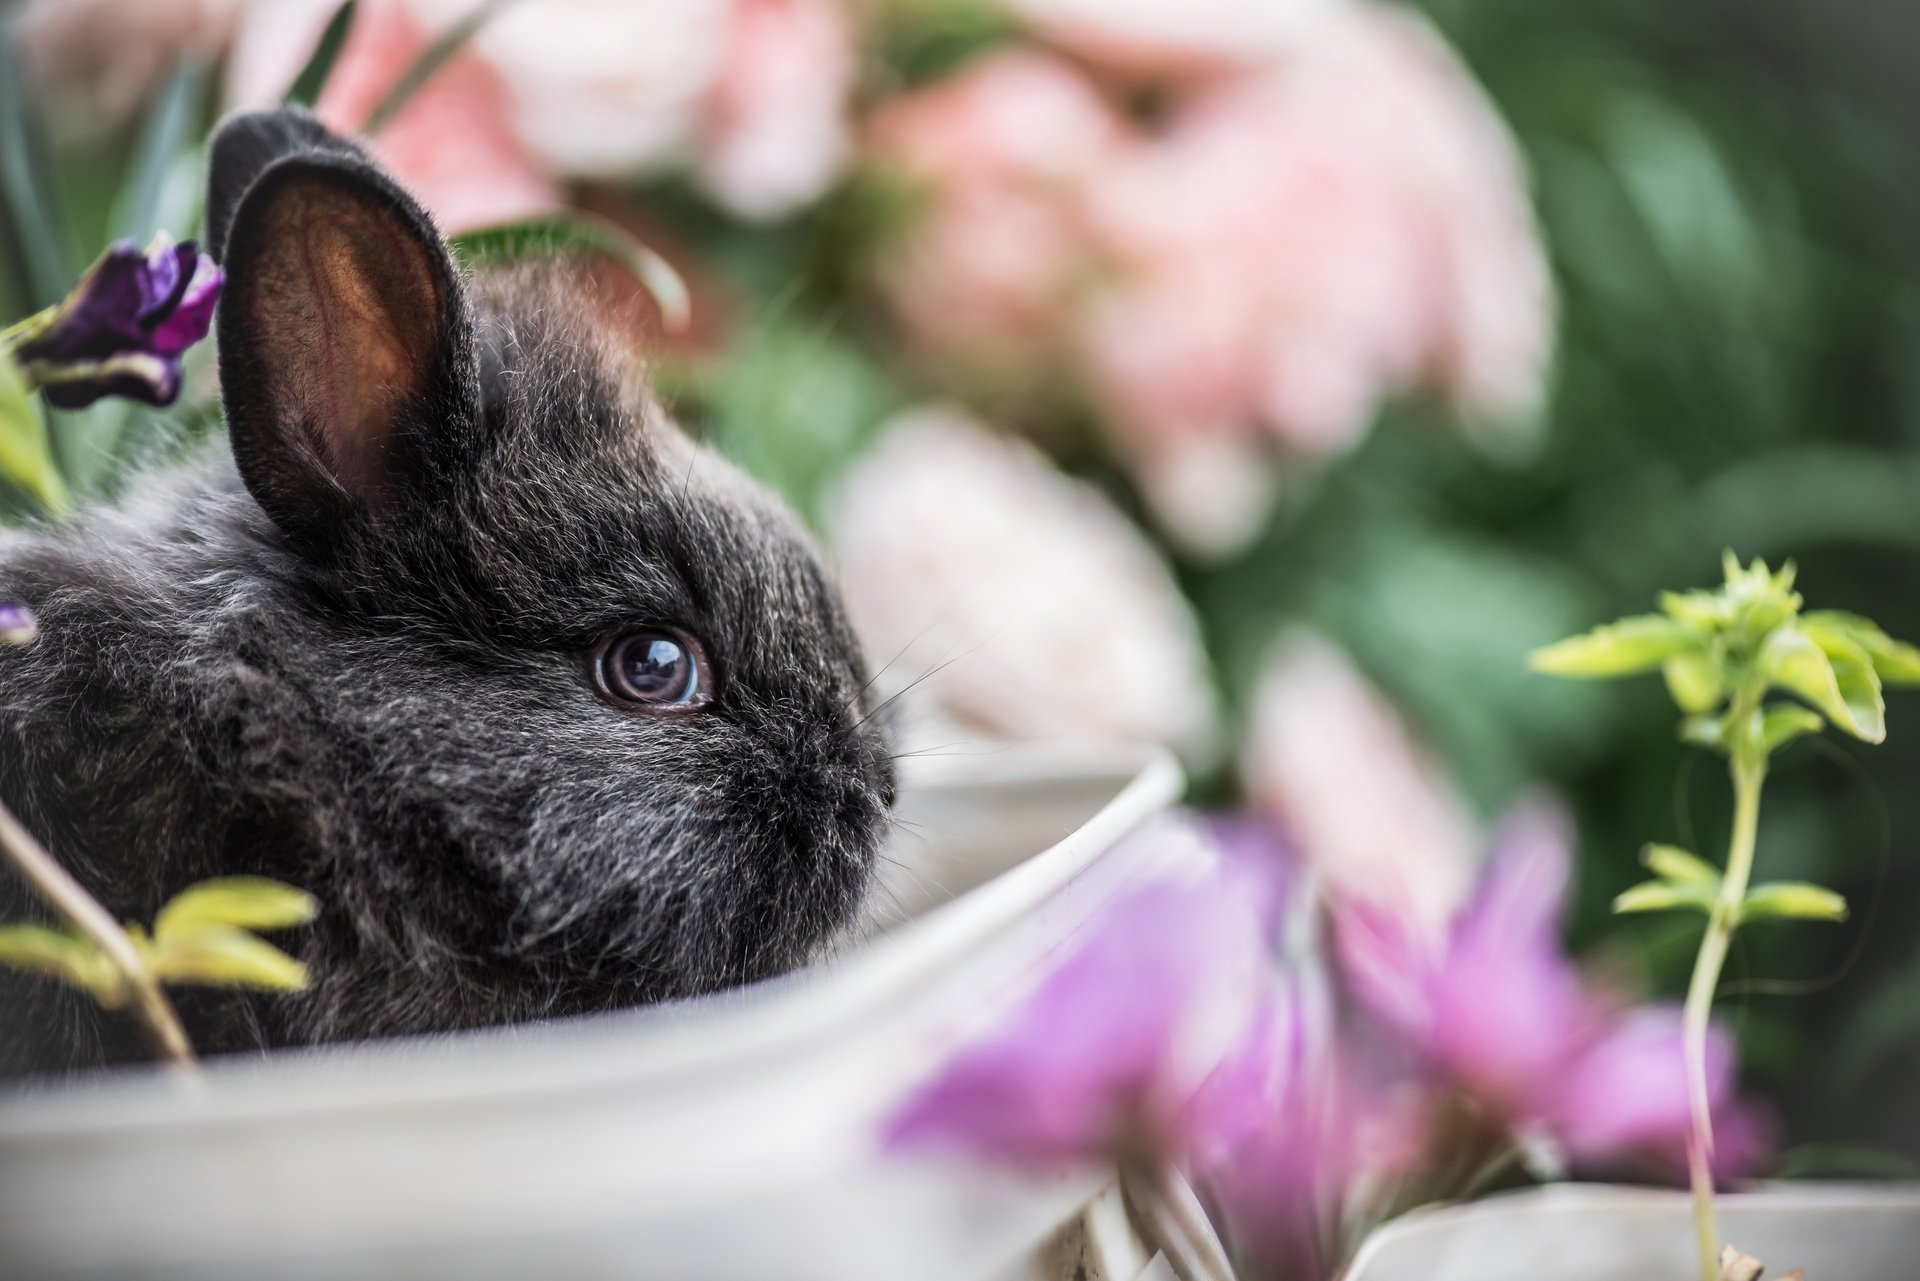 A Rabbit Sitting in Flowers